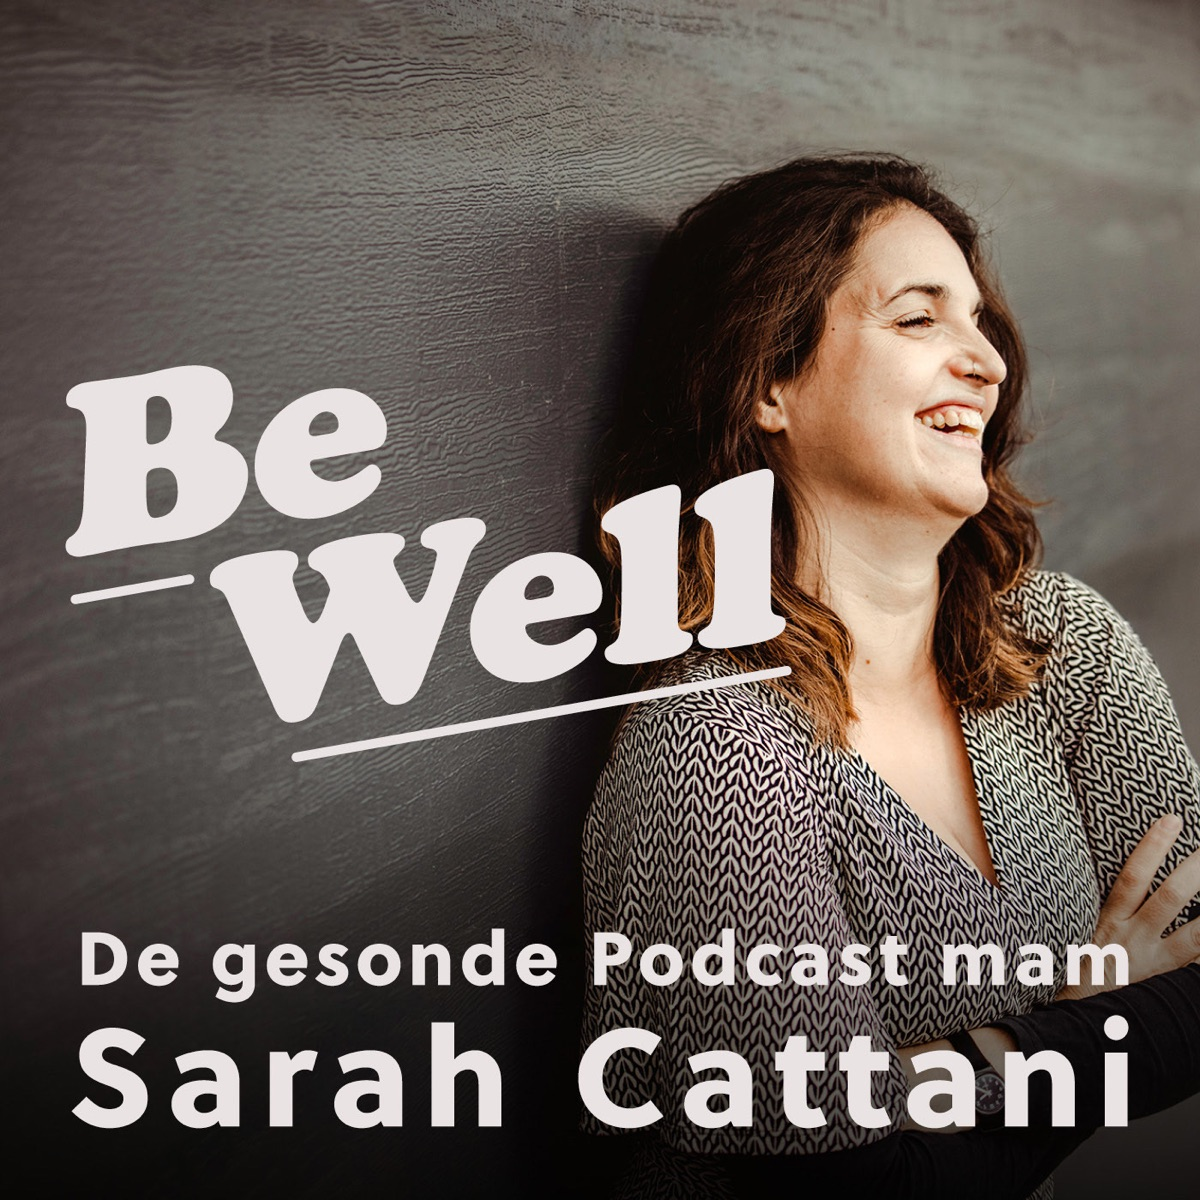 Be Well - De gesonde Podcast mam Sarah Cattani